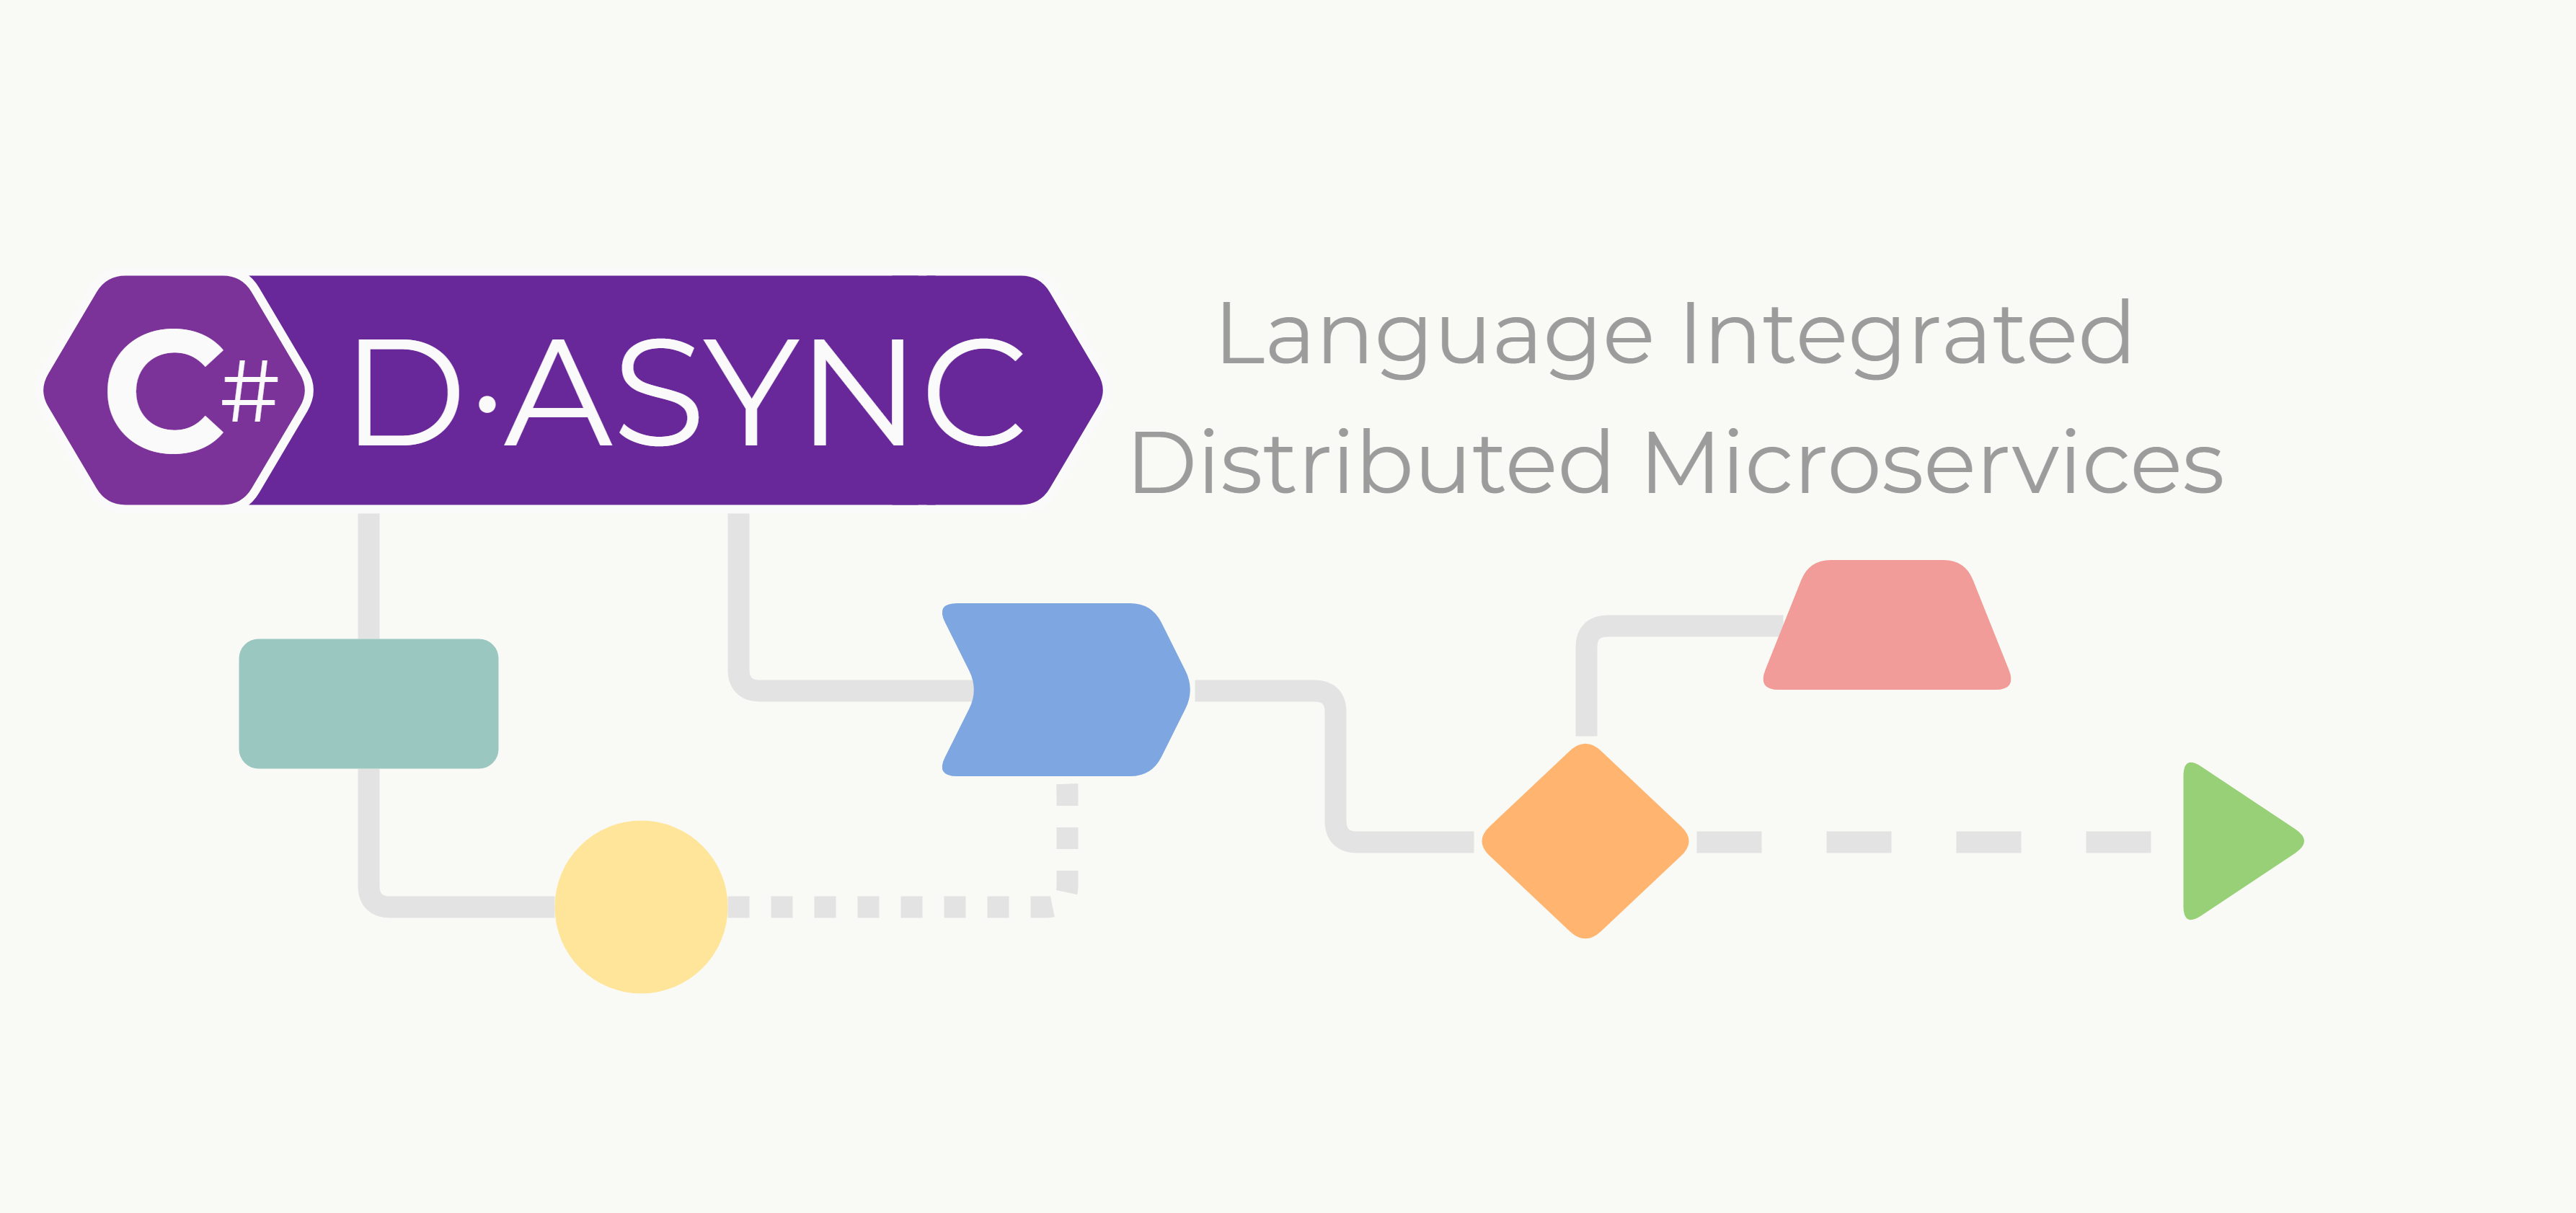 Distributed services and workflows with C#-native language features